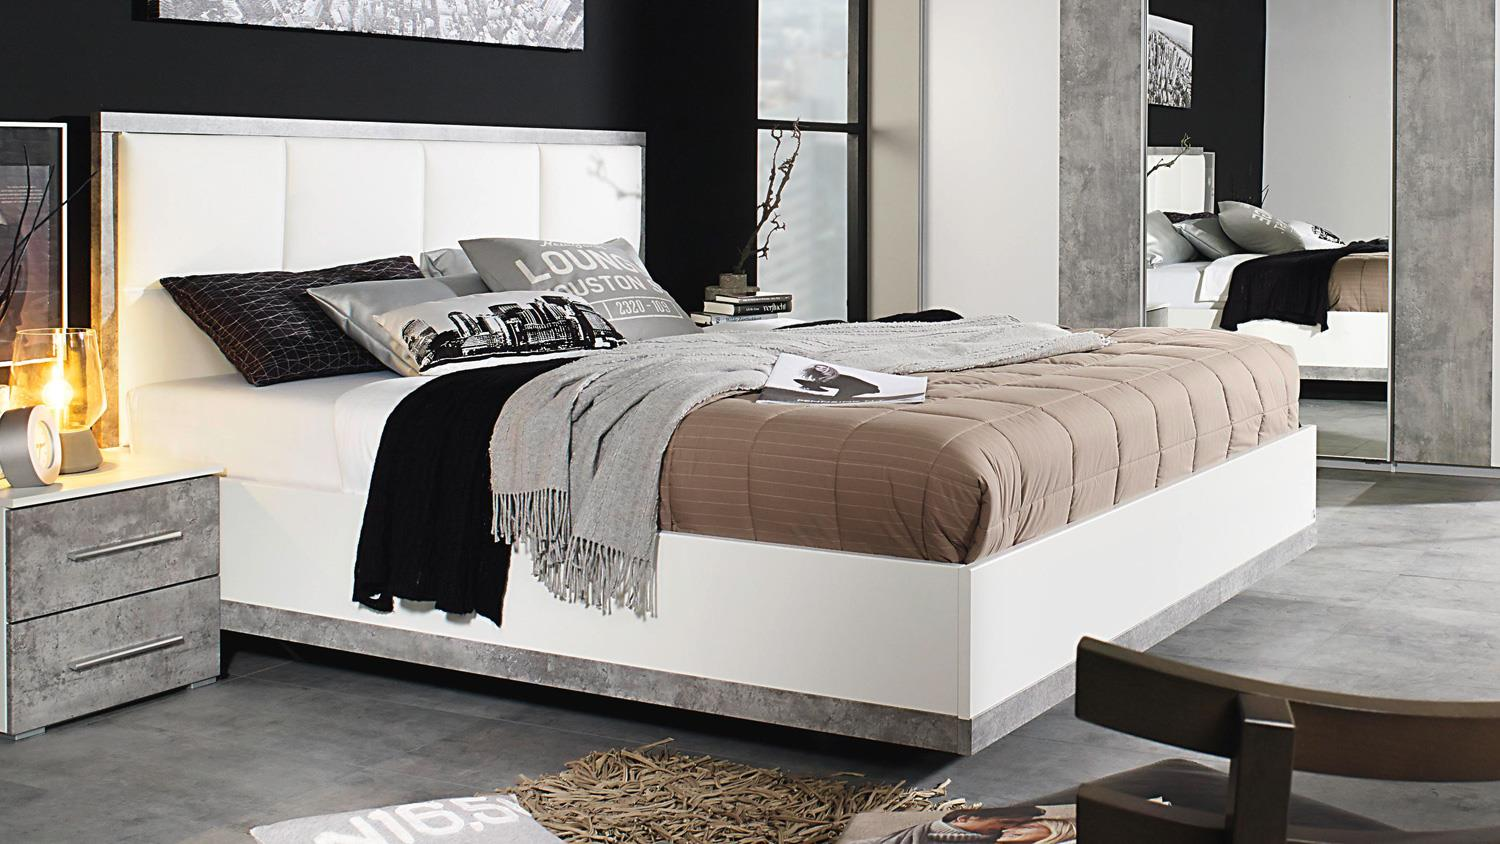 bett siegen bettgestell polsterbett in wei stone grau. Black Bedroom Furniture Sets. Home Design Ideas